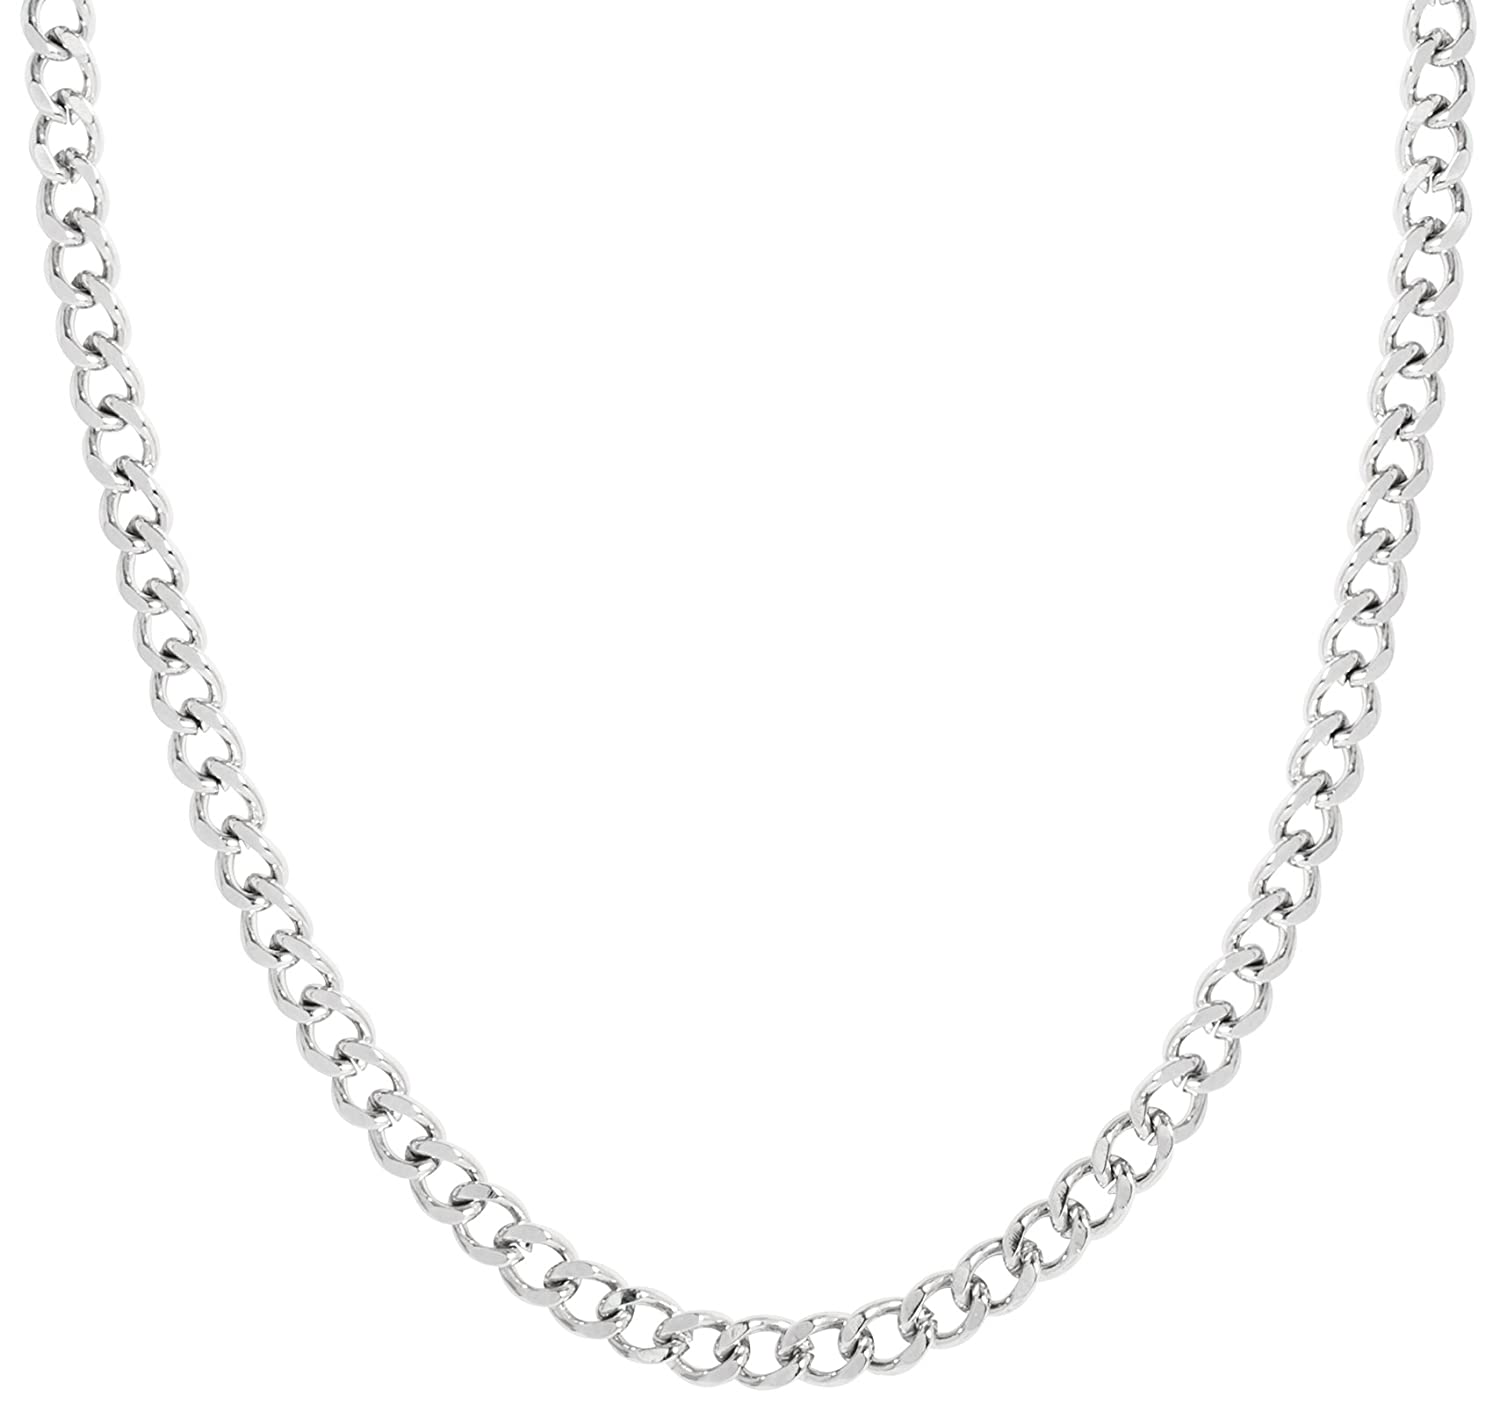 Curb Chain Necklace Stainless Steel Different Sizes For Your Individual Pendant Sun Lifestyle SL397